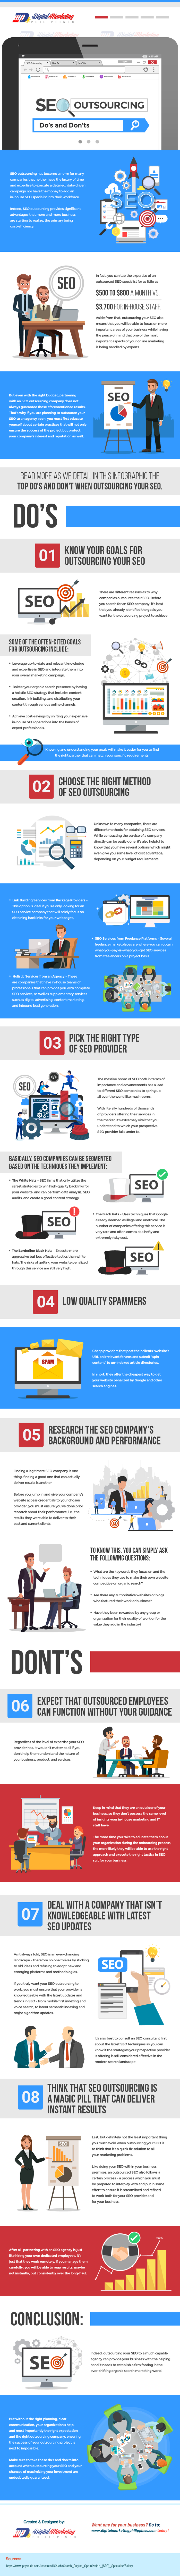 SEO Outsourcing – Dos and Don'ts [Infographic]